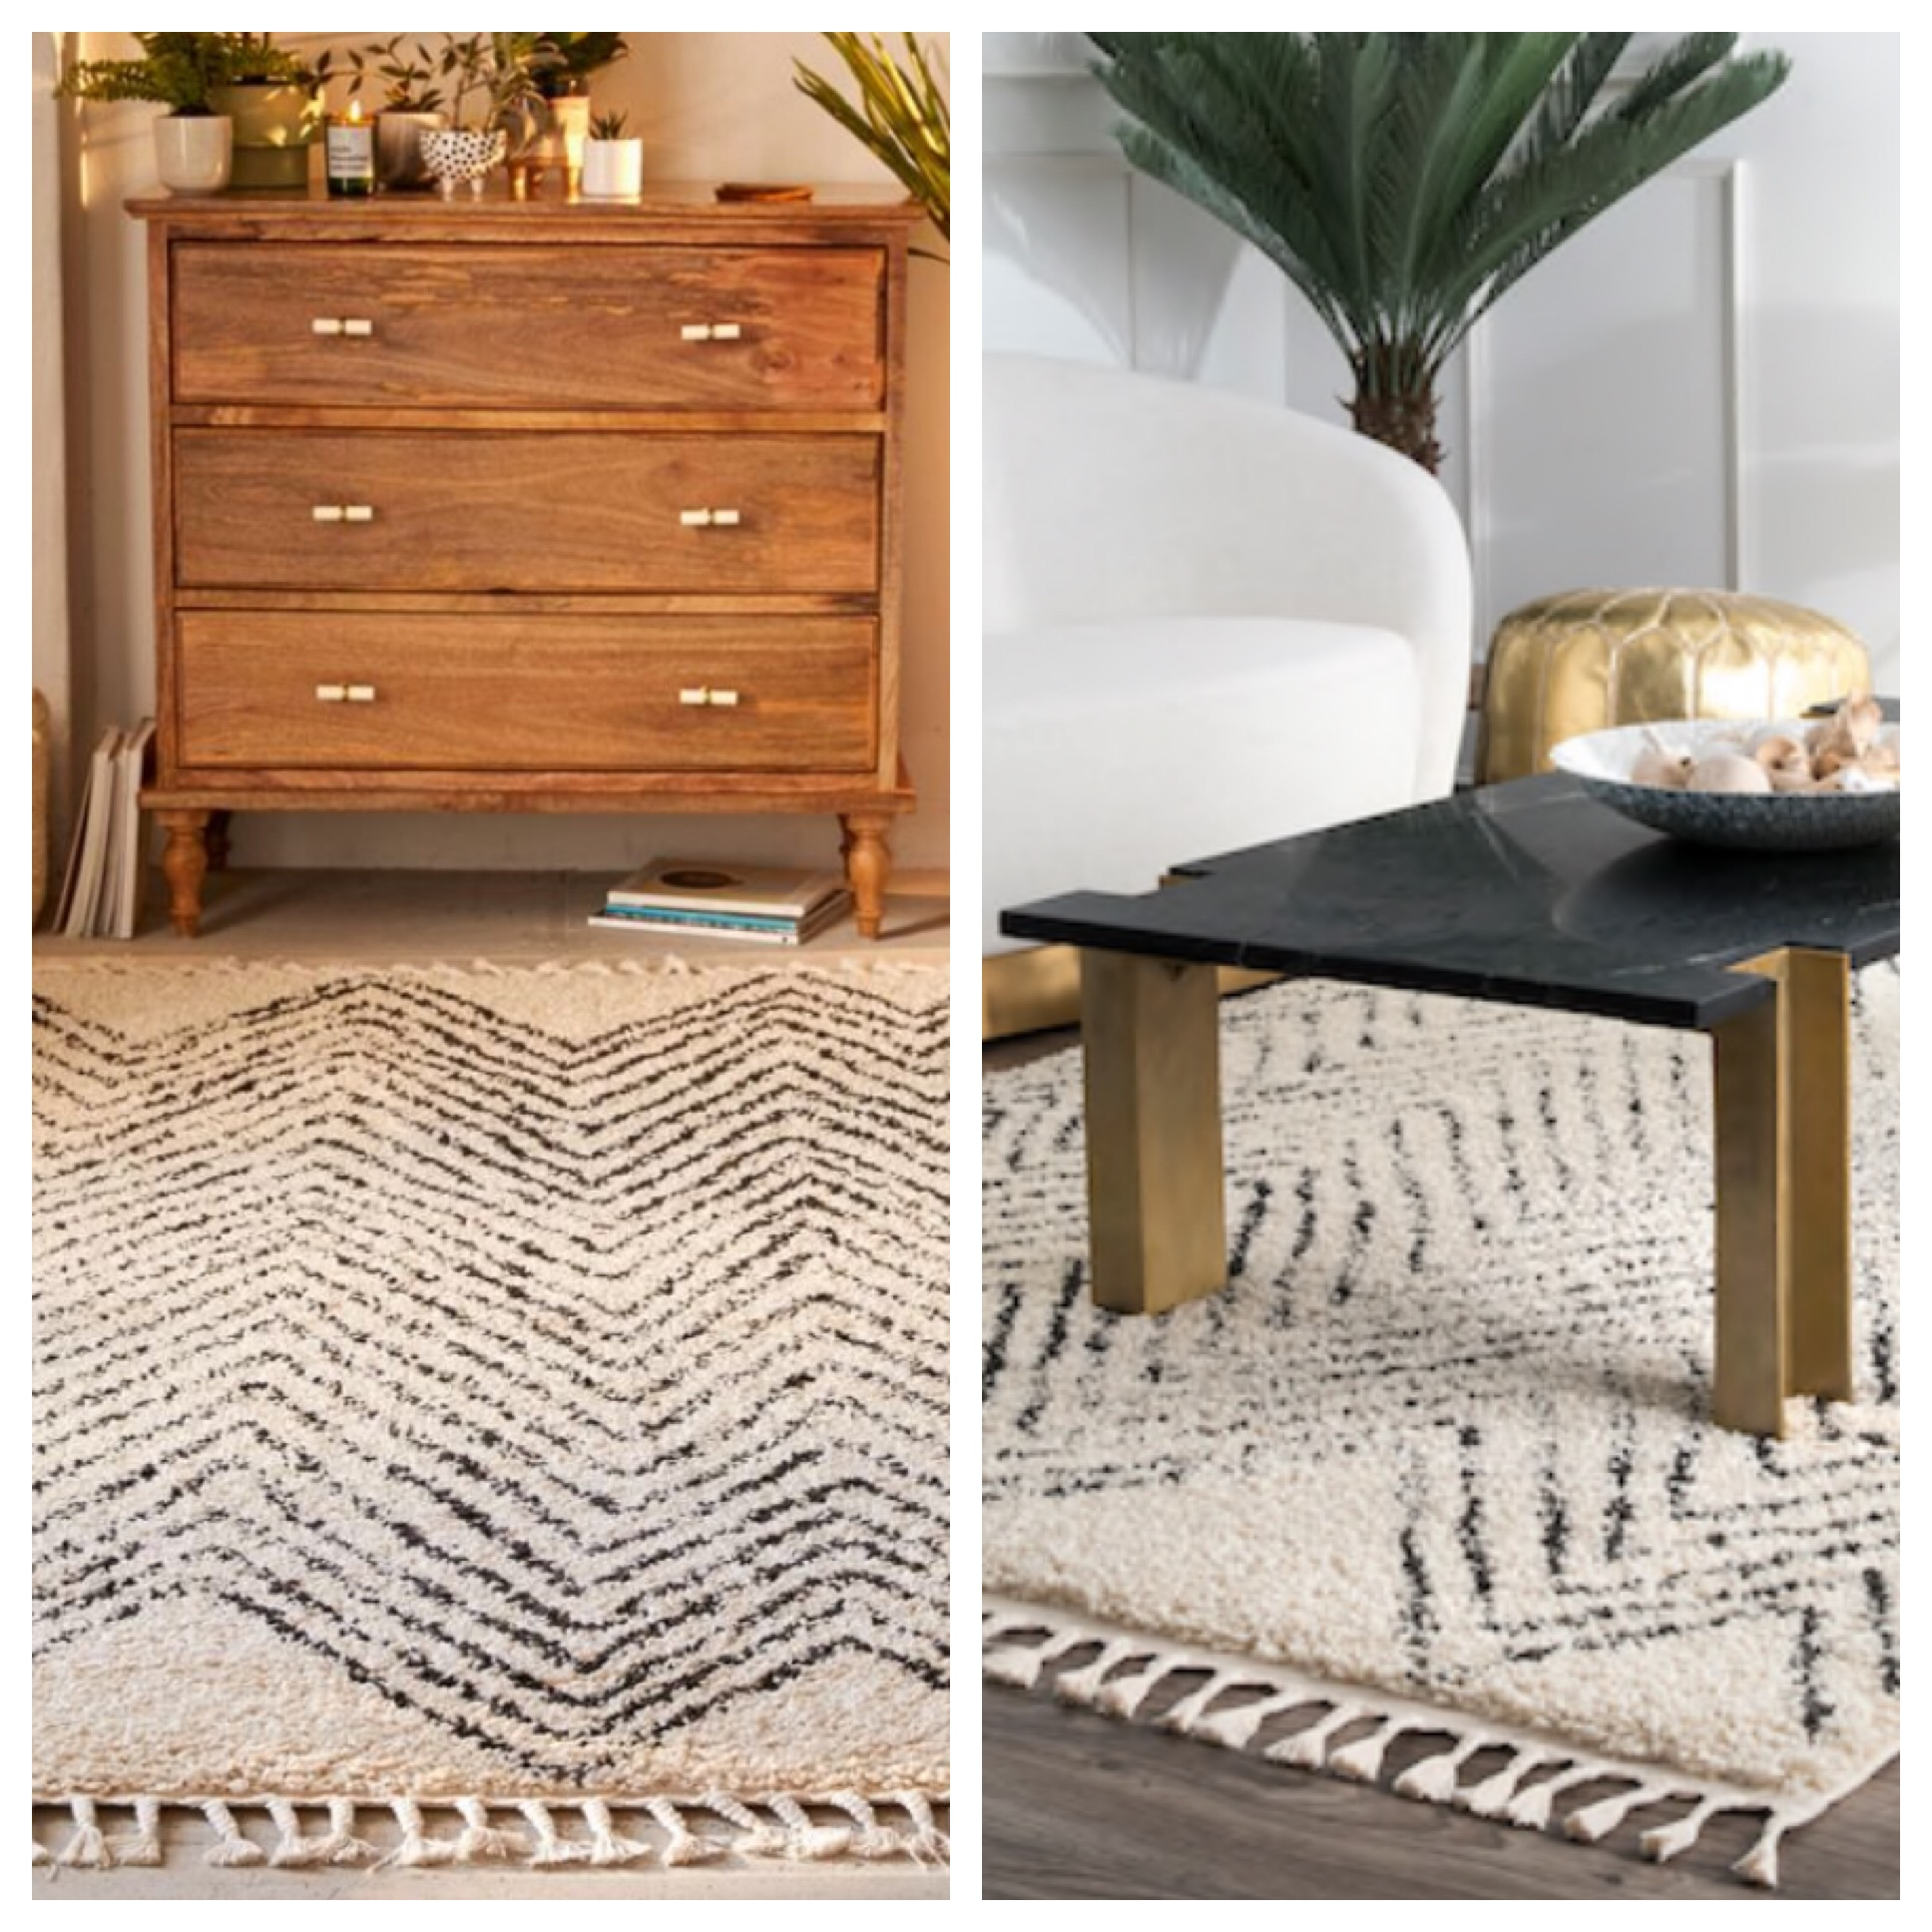 You can get the Chevron Shag Rug from Urban Outfitters for $379 (8x10) OR you can get the Off white Moroccan Chevron Tassel Temara rug for $275. SAME. THEY ARE THE SAME.